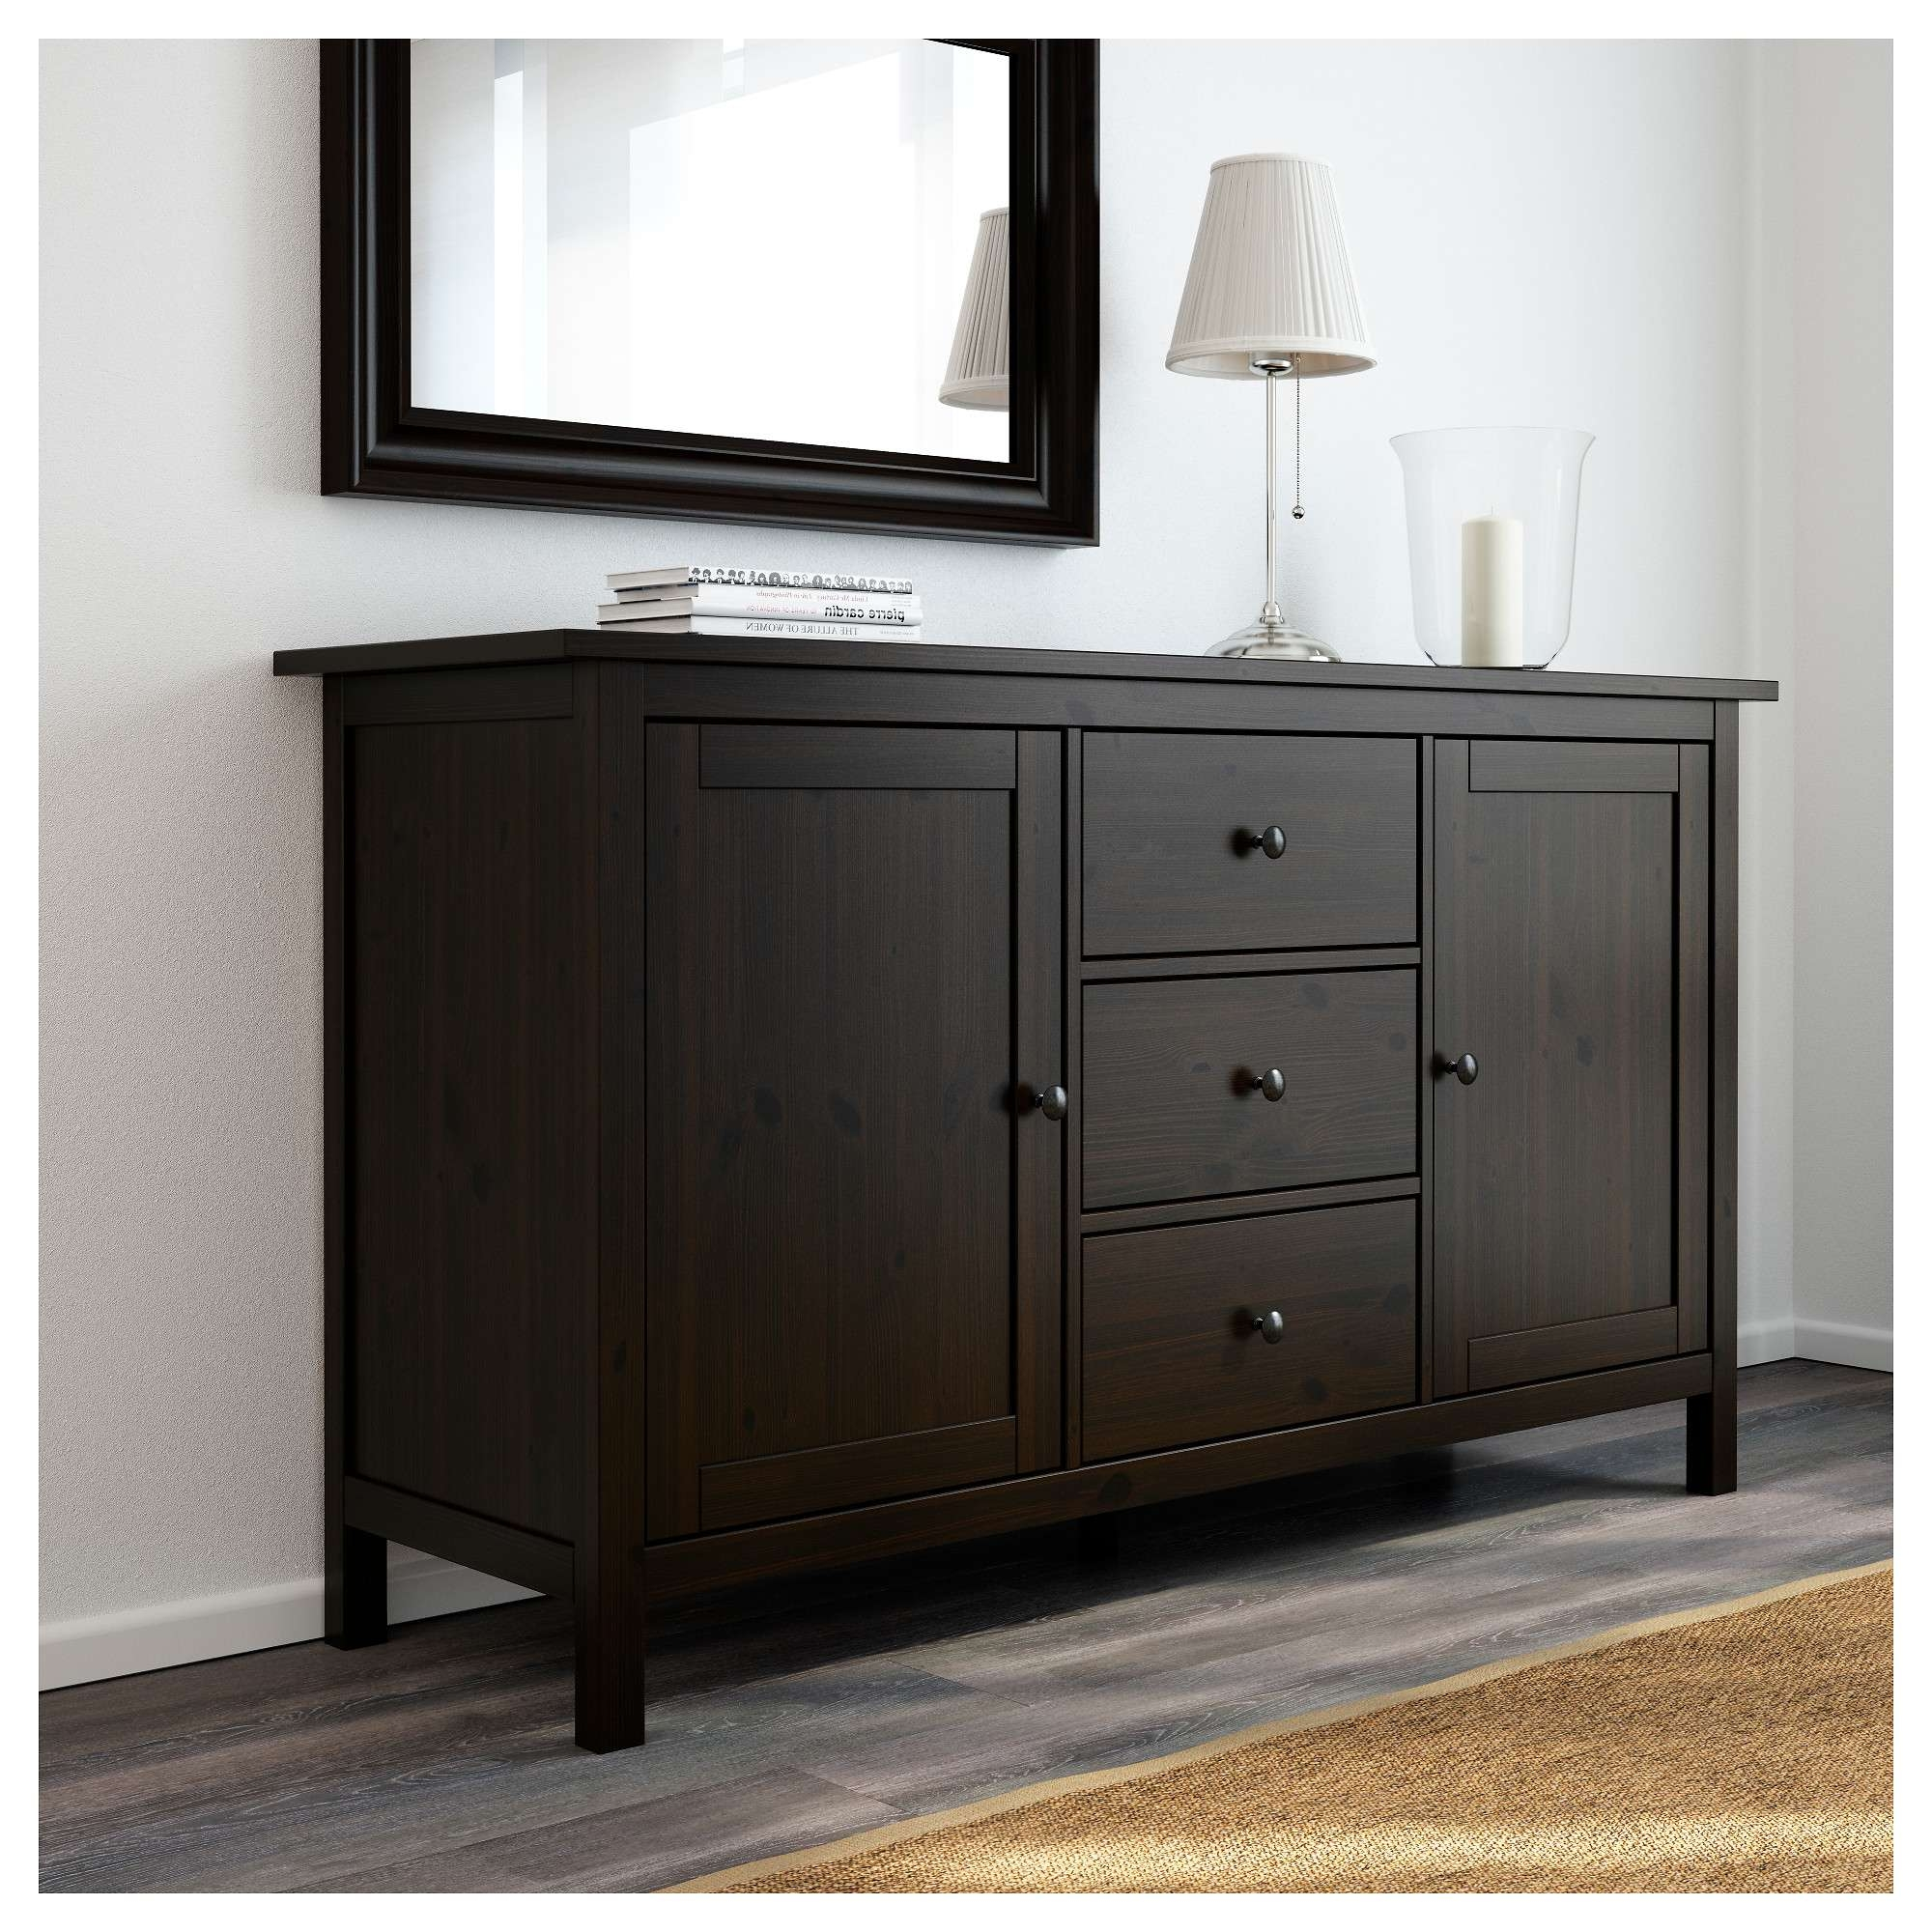 Hemnes Sideboard Black Brown 157X88 Cm – Ikea Regarding Black Sideboards (View 12 of 20)